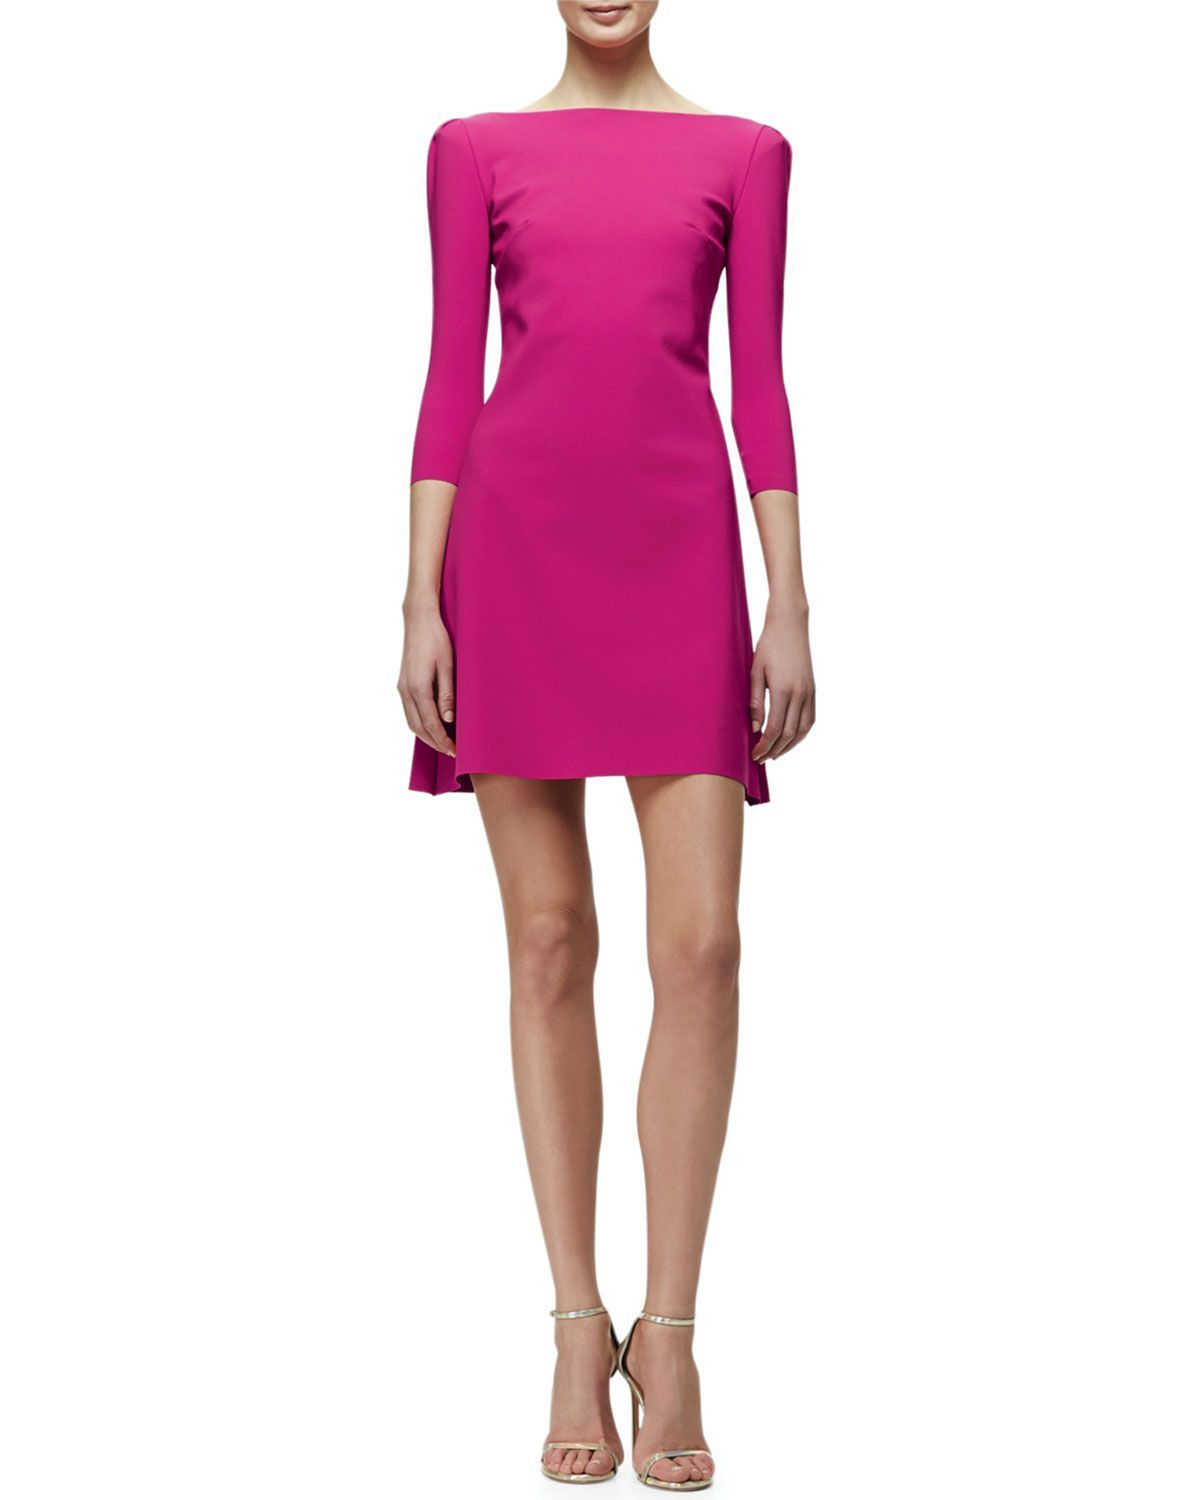 Marcelle 3/4-Sleeve Cocktail Dress, Lapone